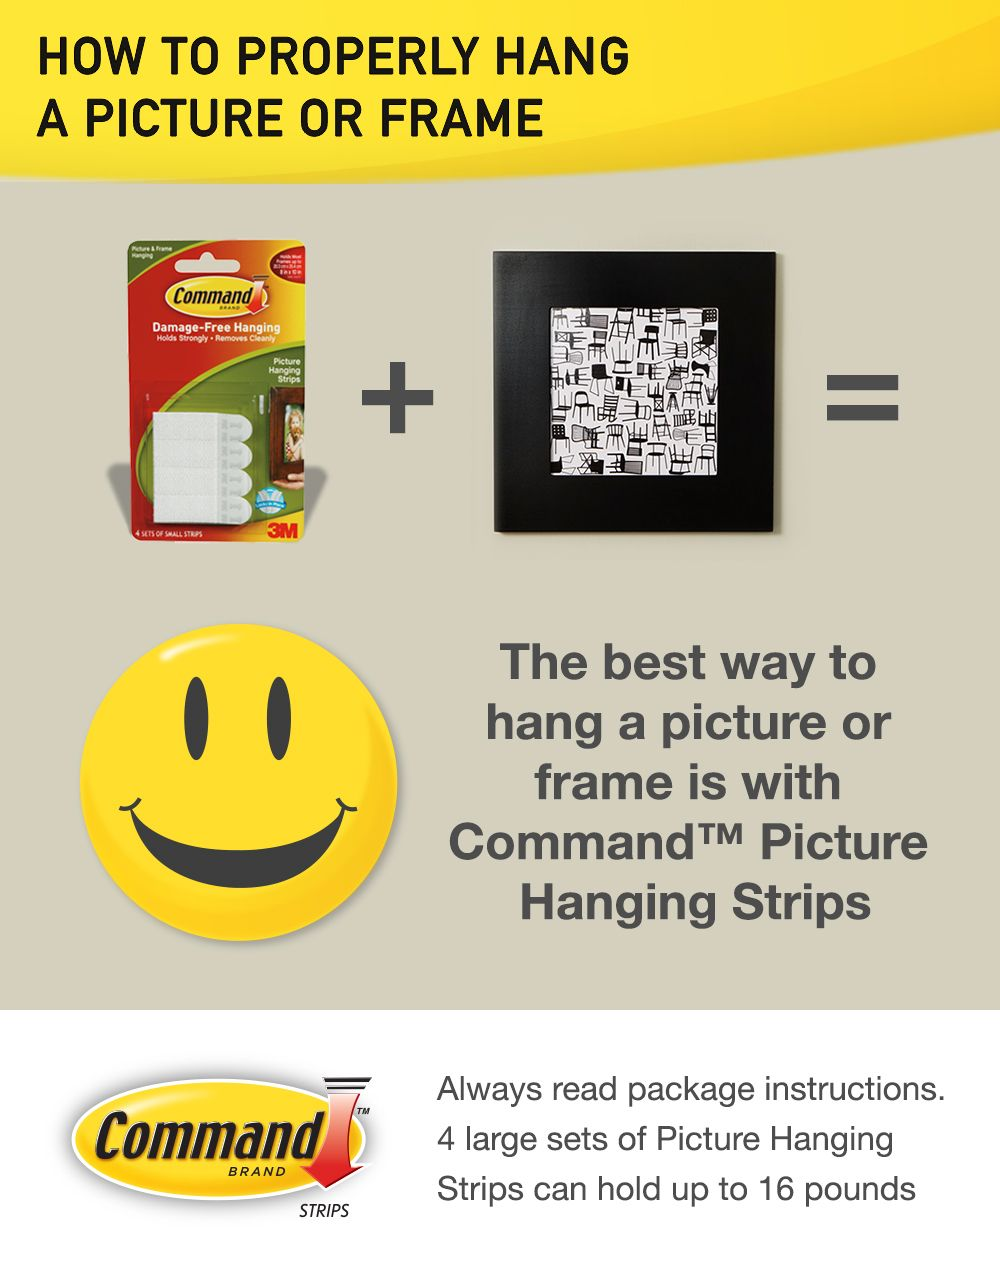 How to hang a picture or frame: use Command™ Picture Hanging